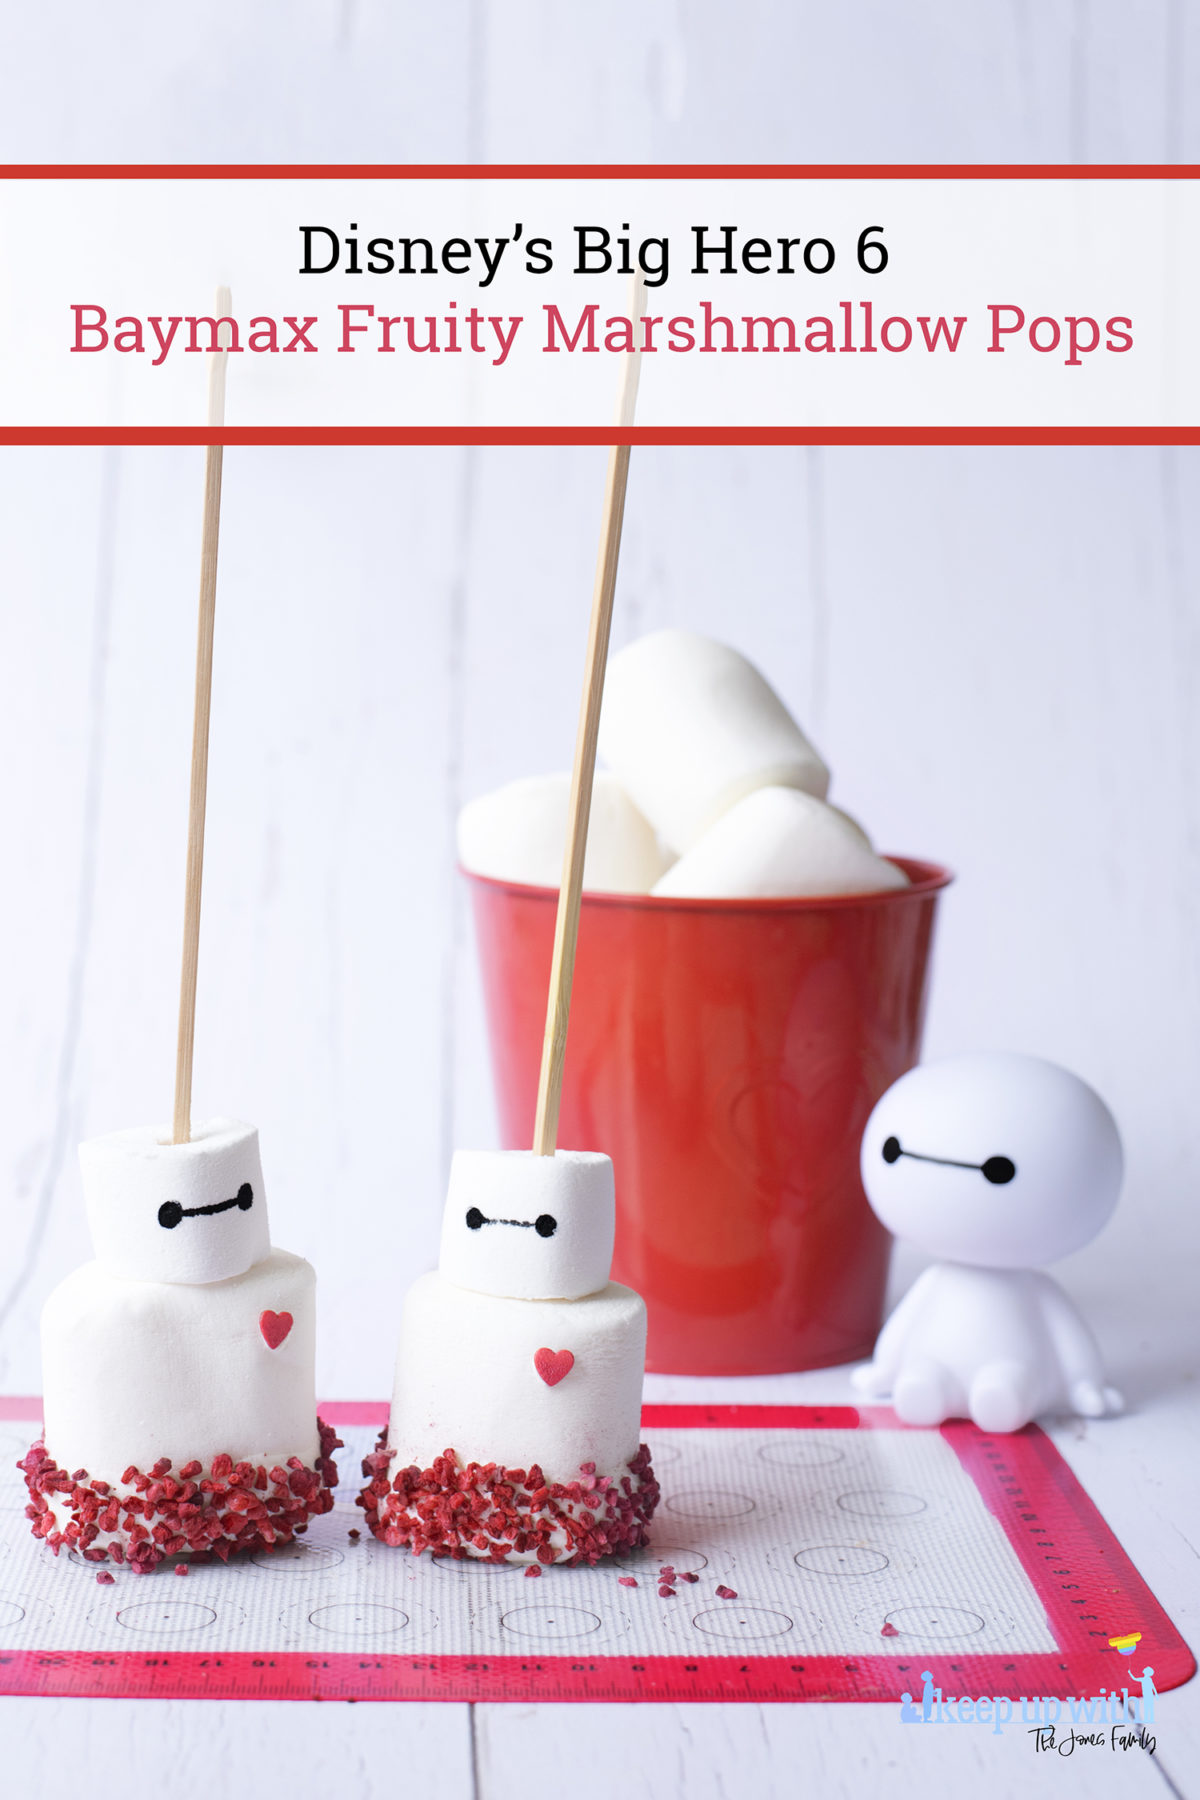 Image shows how to make Disney's Big Hero 6 Baymax Fruity Marshmallow Pops. Image by Keep Up With The Jones Family.